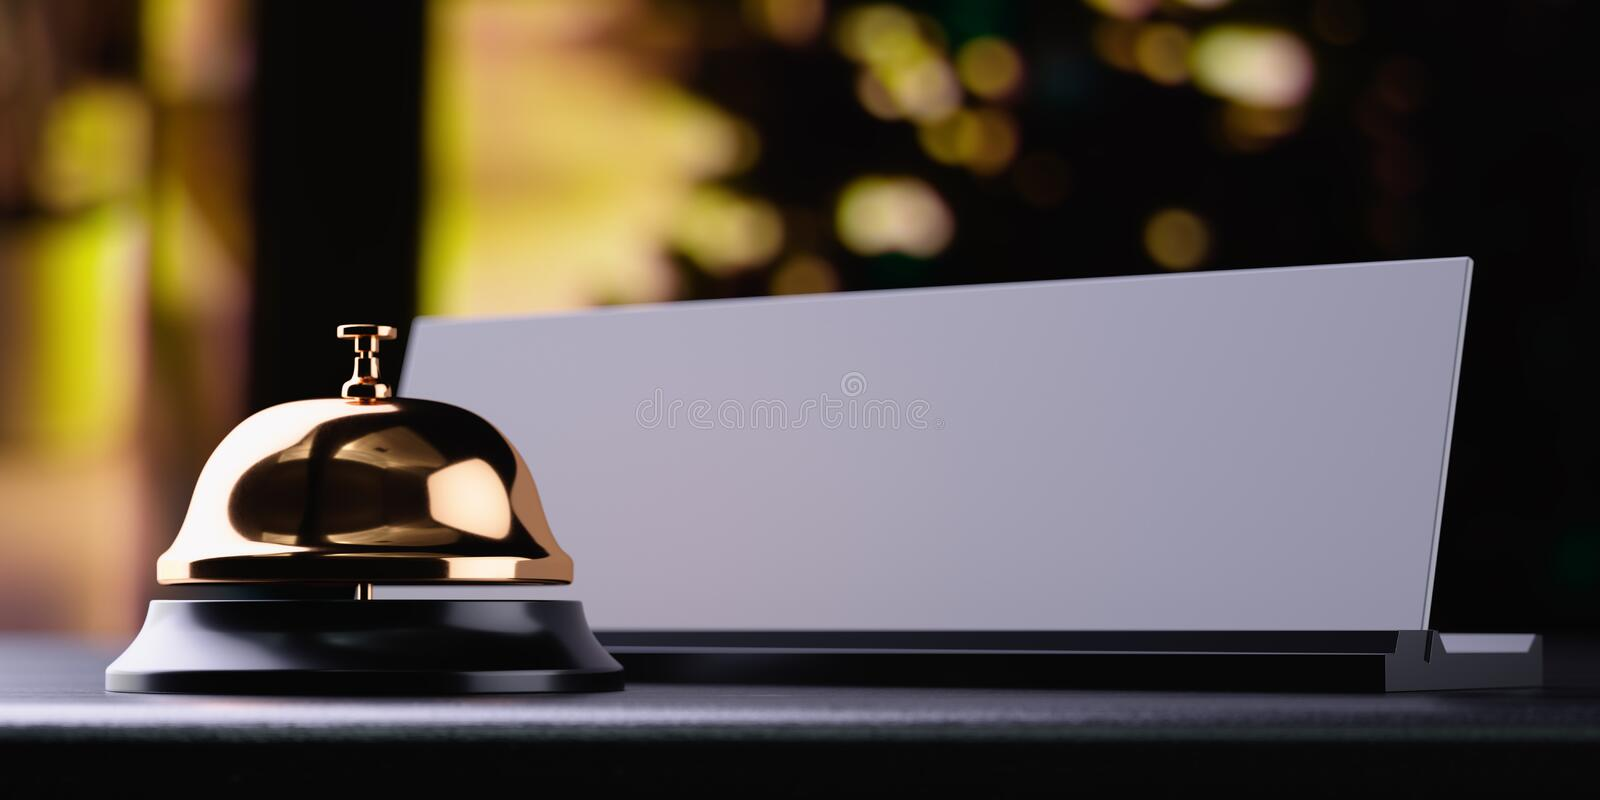 Download Reception Bell Golden With White Card Stock Illustration - Illustration of card, business: 105241483